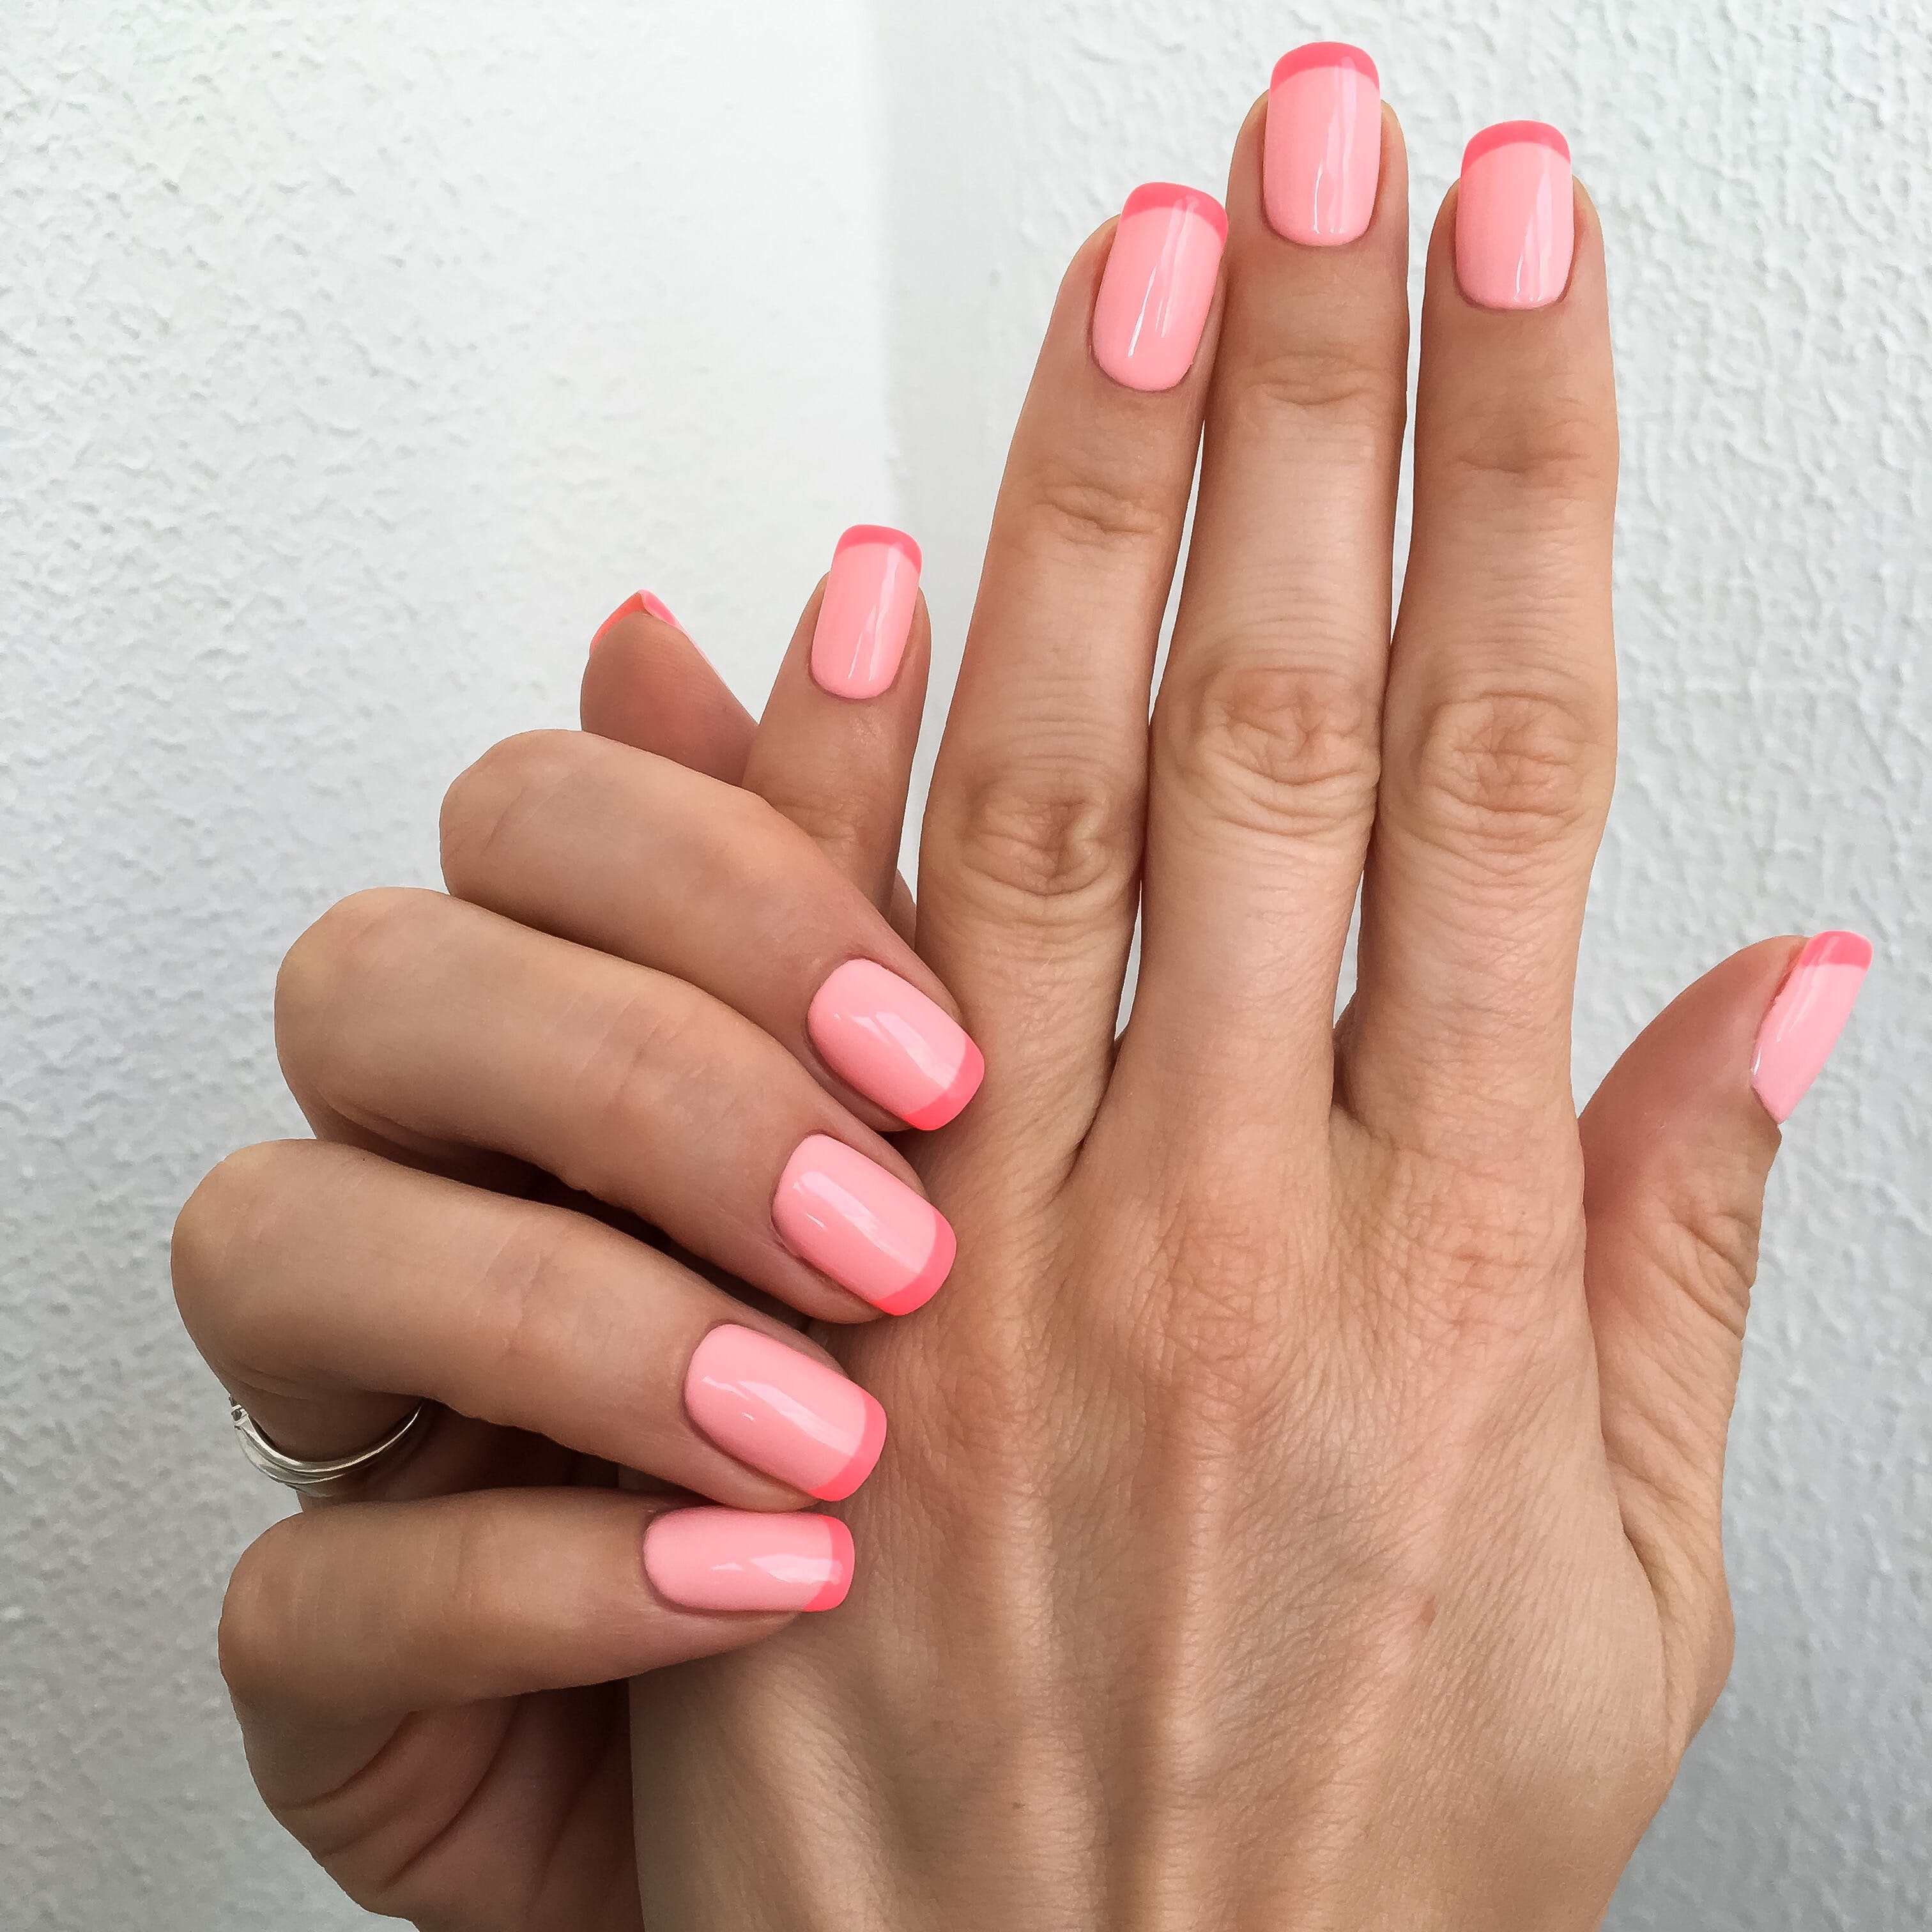 The Biggest 2017 Spring Nail Trends in Miami - PureWow